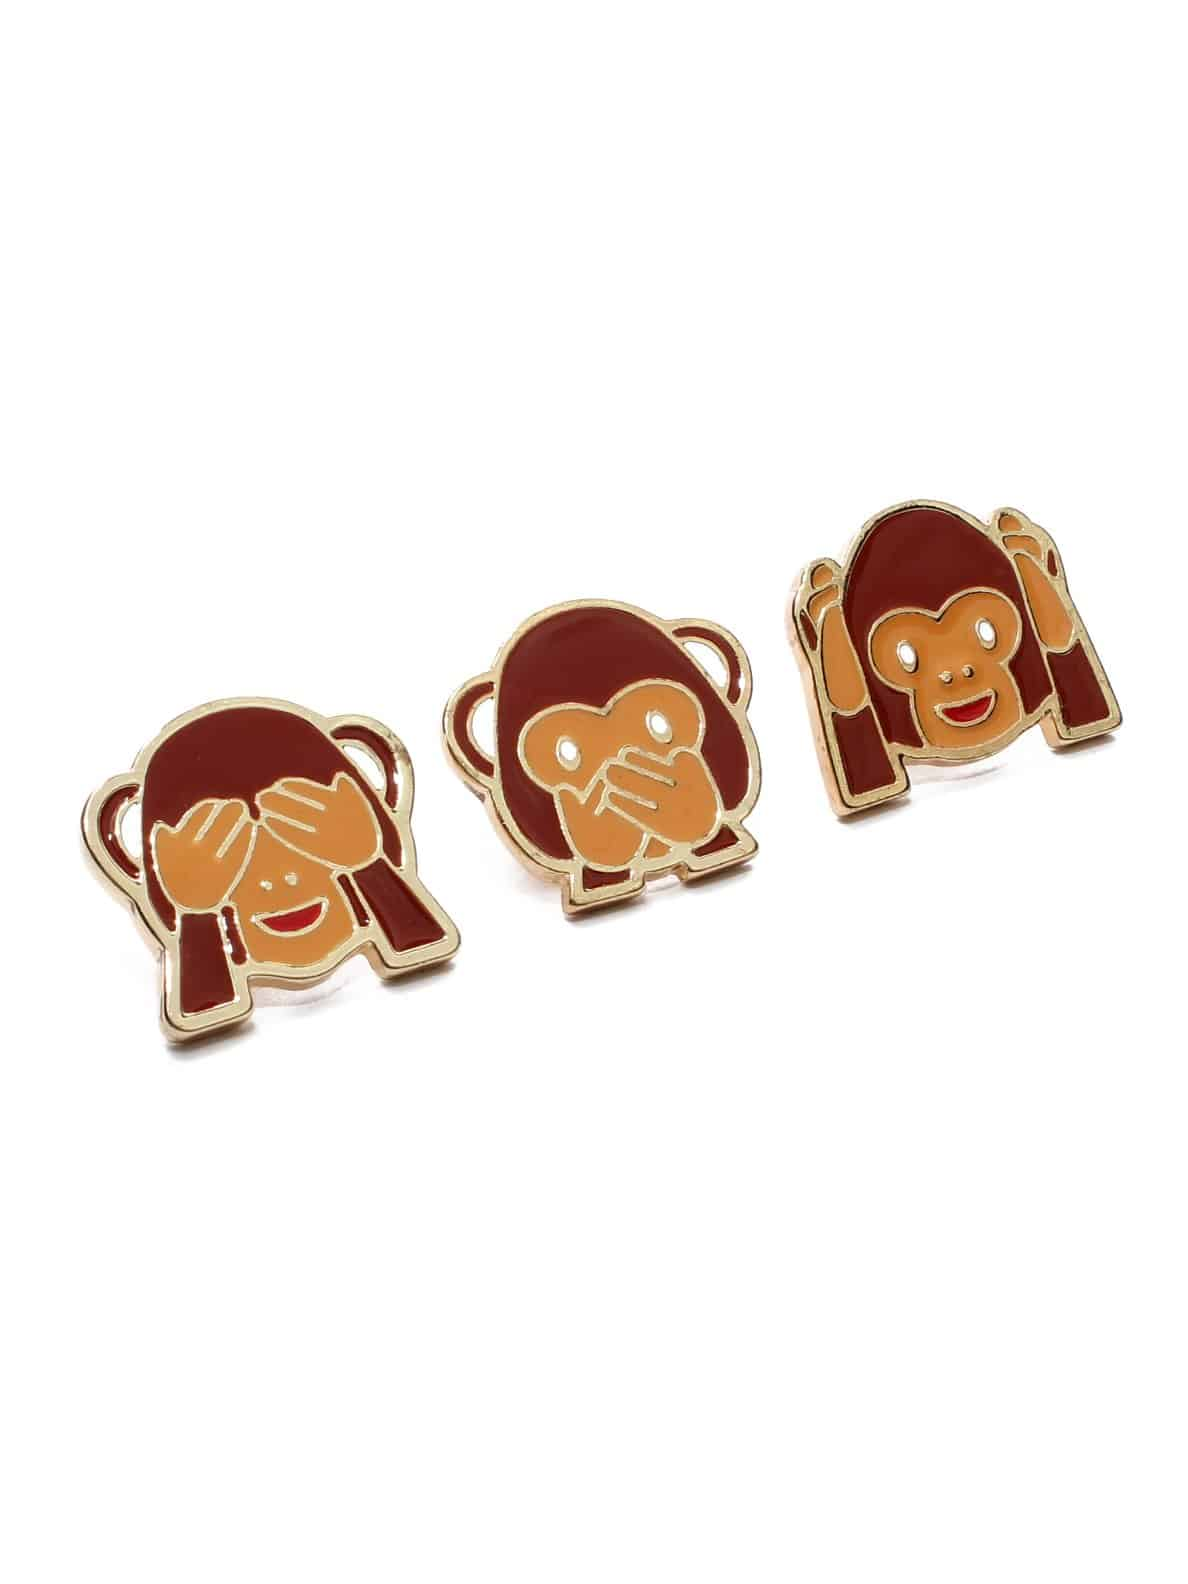 Bellofox Monkey Brooch (Set of 3) Accessories